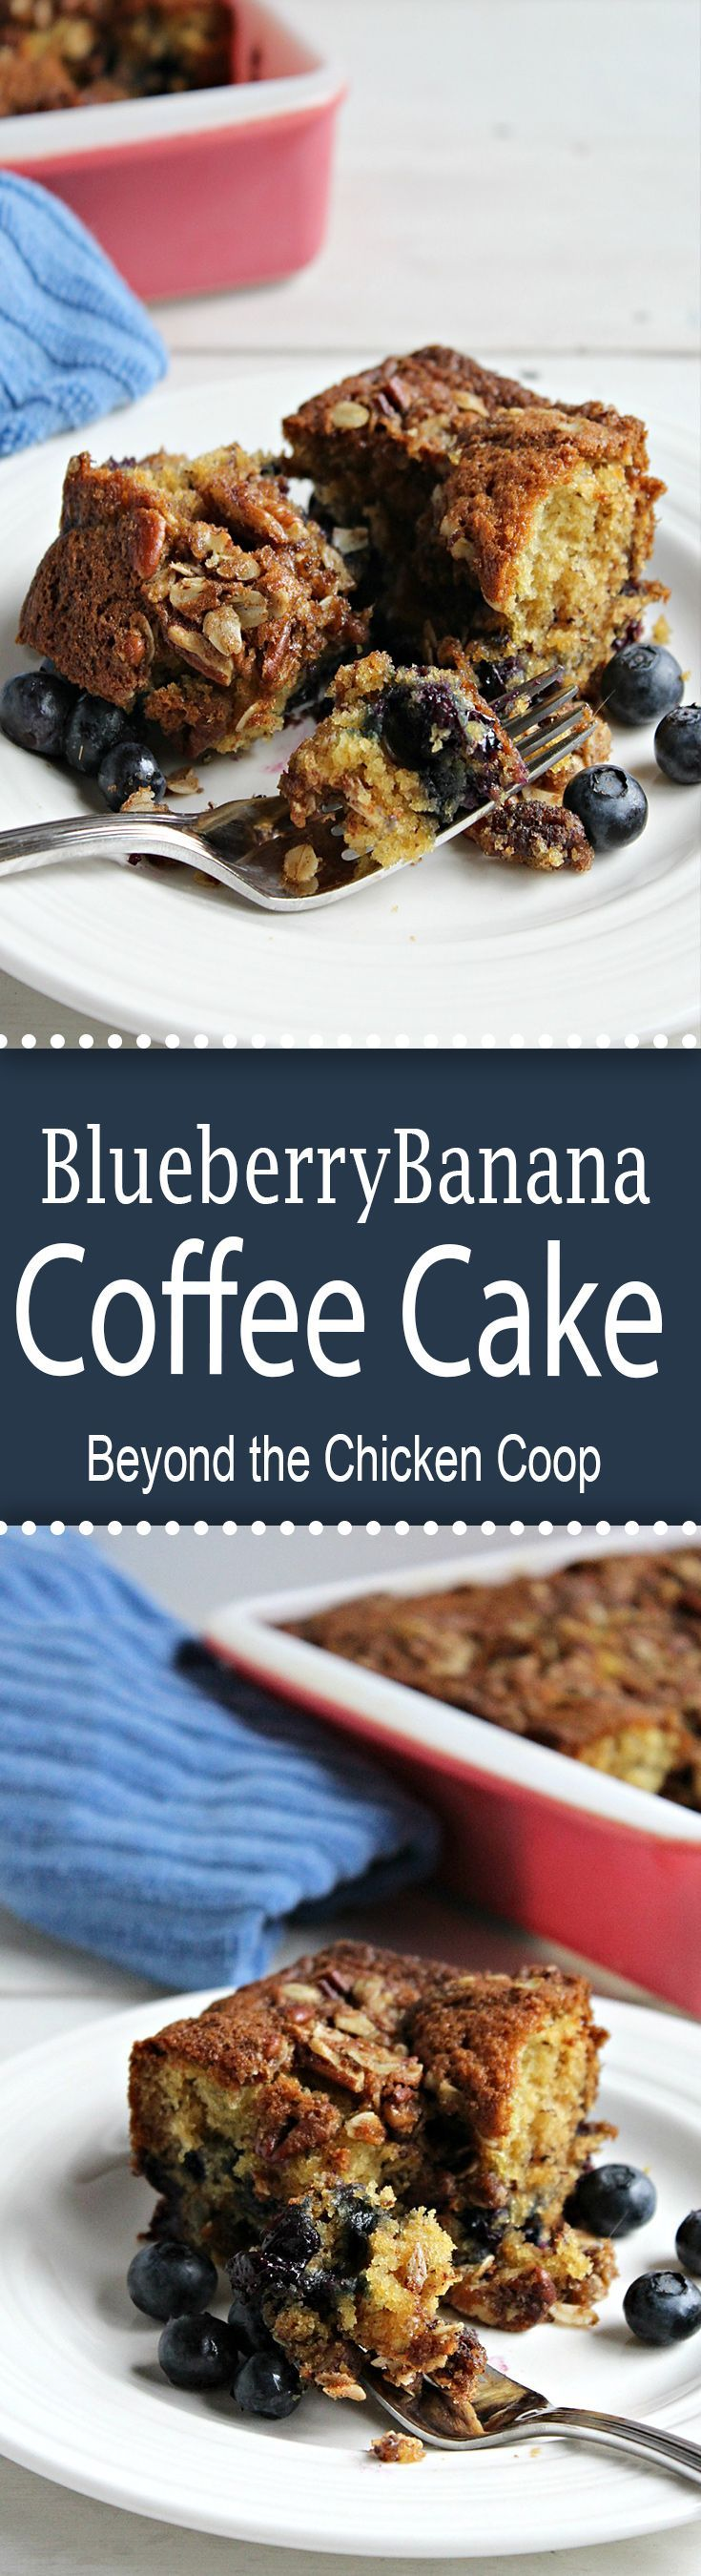 98 best Coffee Cake Recipes images on Pinterest